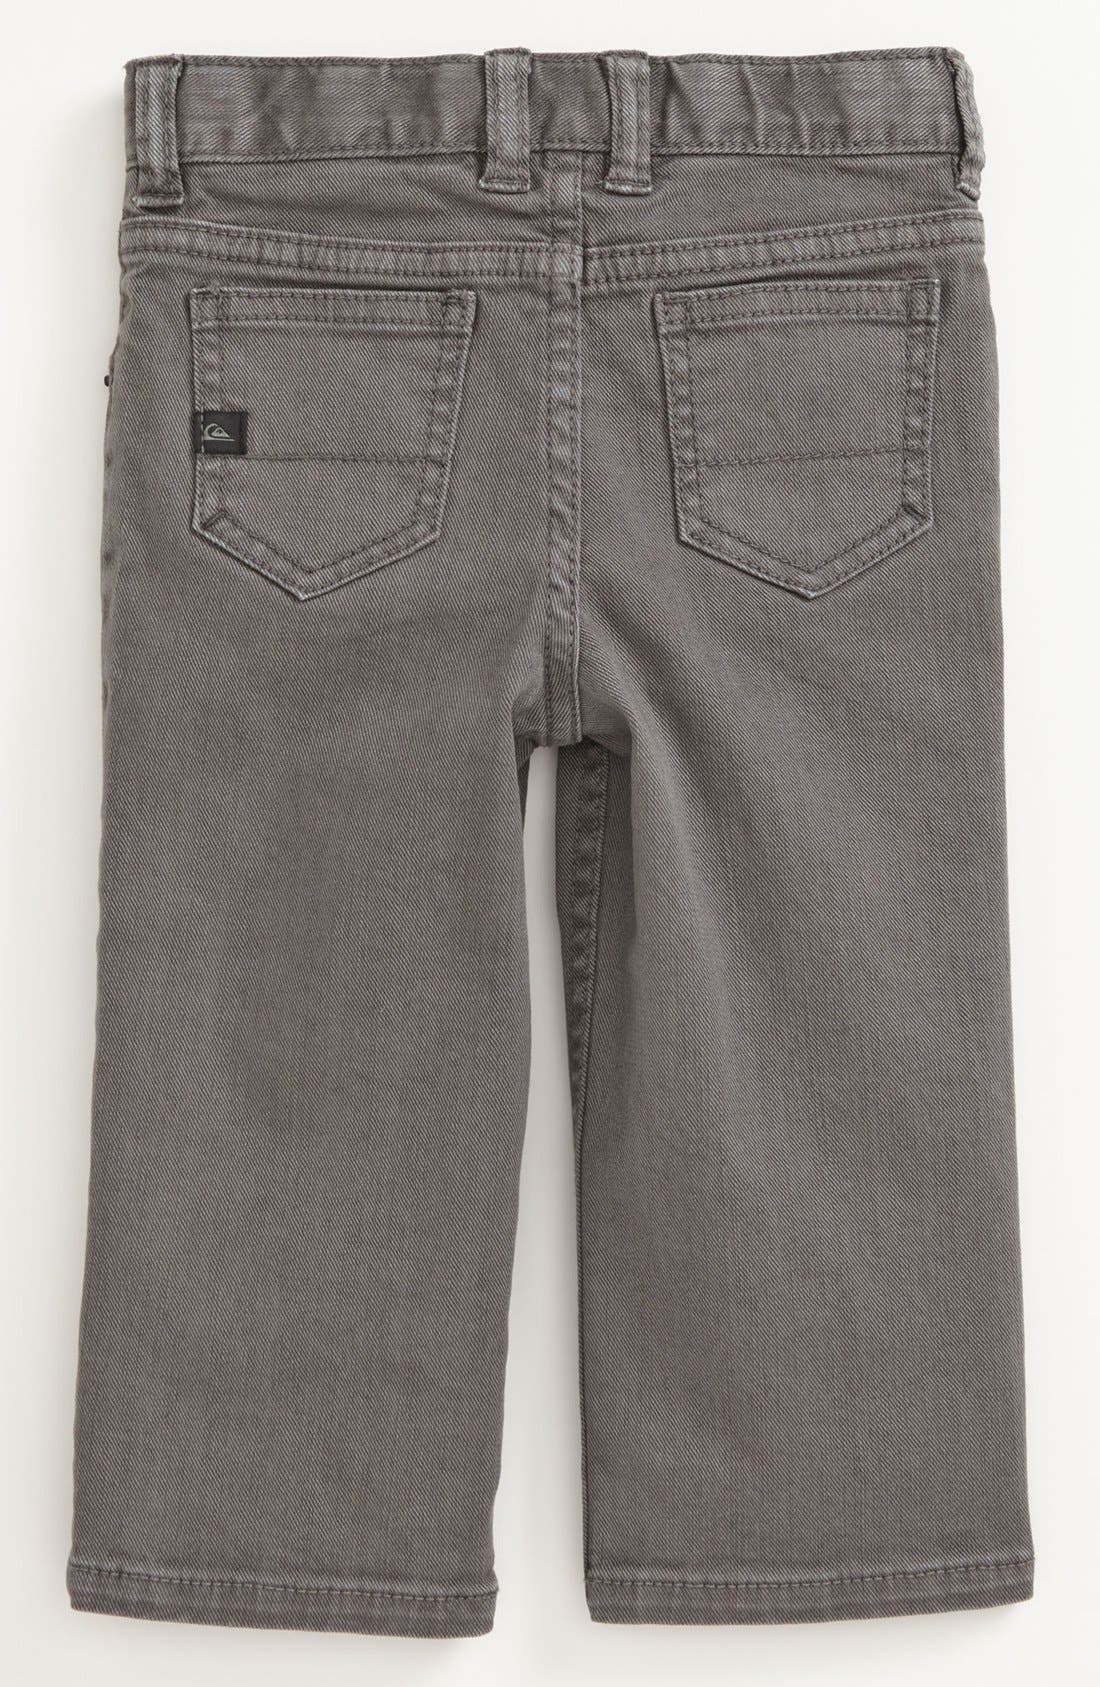 Alternate Image 1 Selected - Quiksilver 'Distortion' Pants (Toddler Boys)